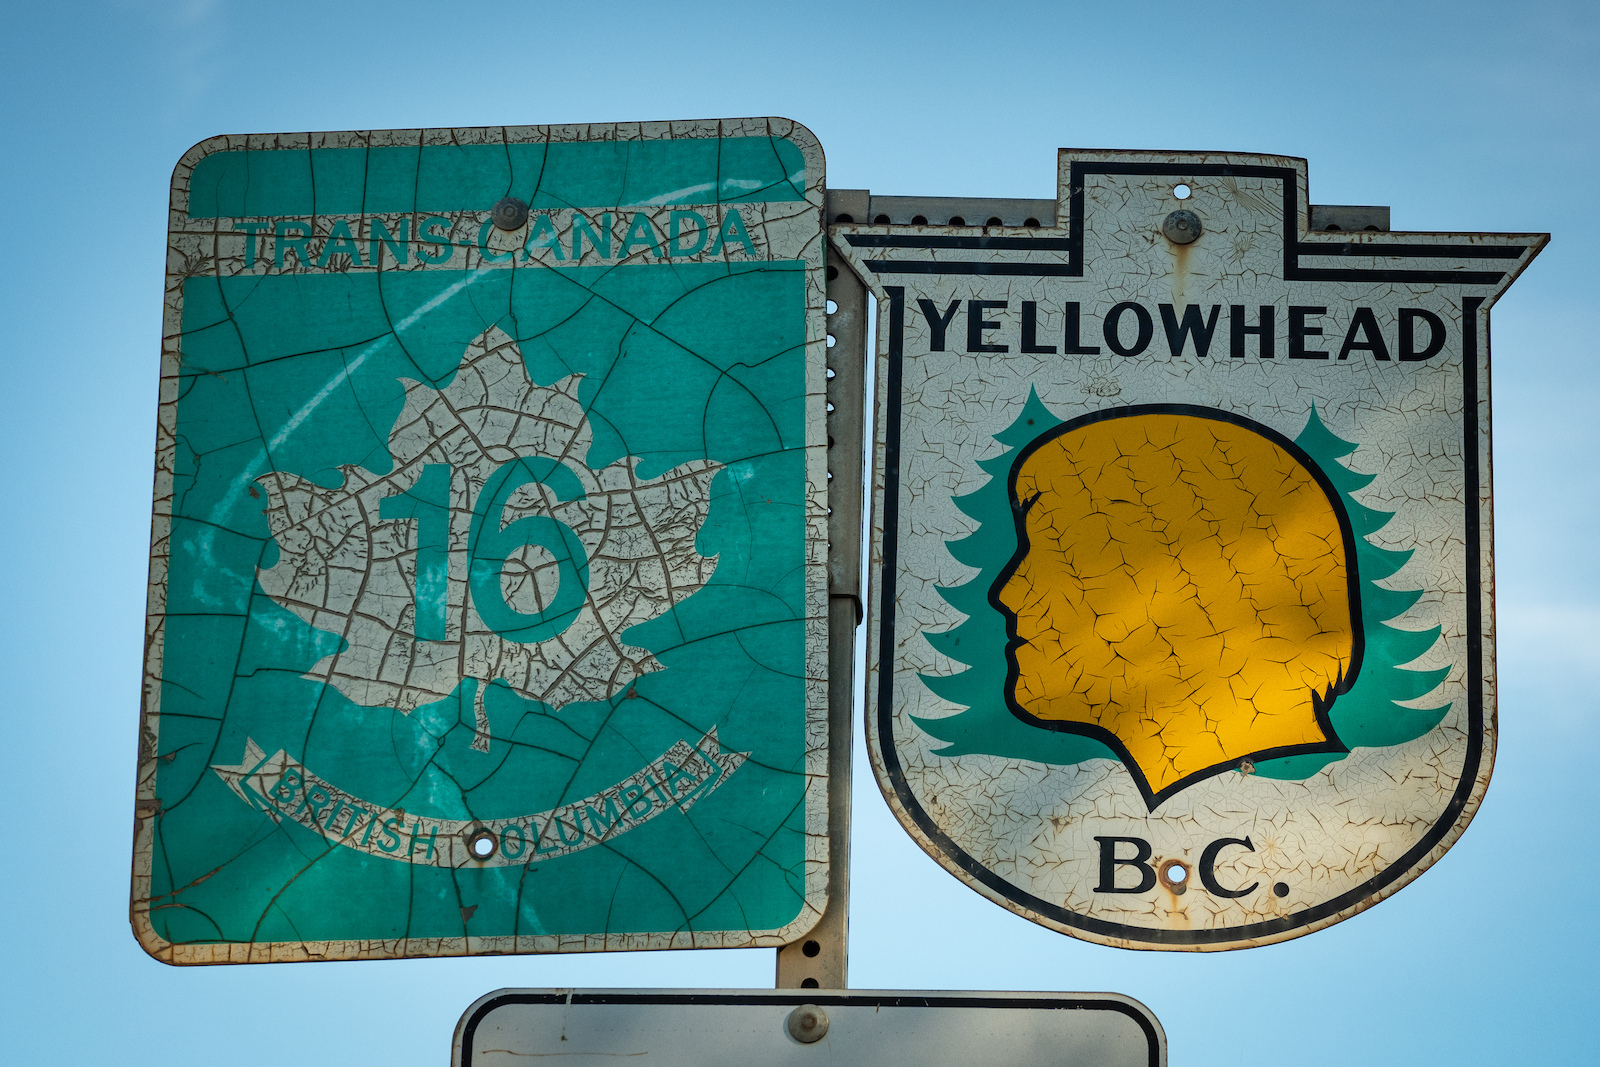 The Yellowhead Highway hwy 16 runs from Prince Rupert just west of Terrace all the way across BC Alberta Saskatchewan and Manitoba.